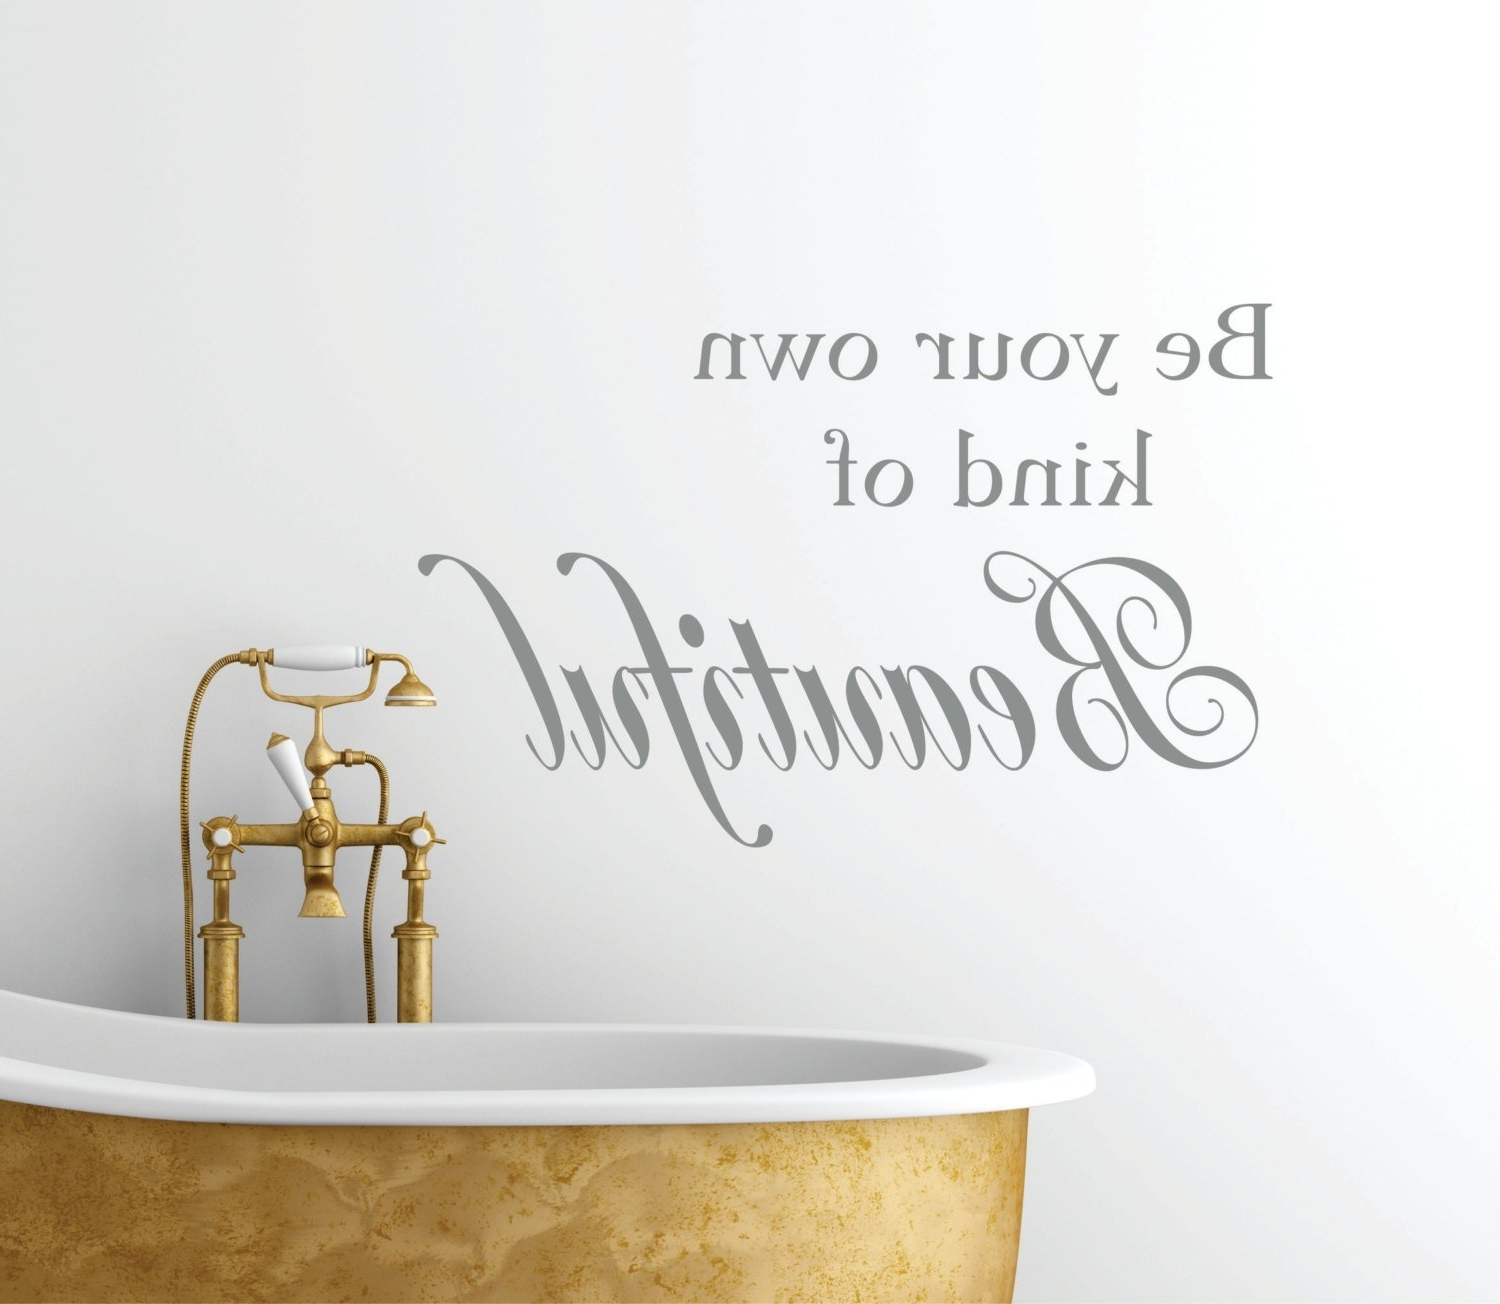 Be Your Own Kind Of Beautiful Vinyl Wall Decal // Bathroom Decor In Best And Newest Be Your Own Kind Of Beautiful Wall Art (View 2 of 15)